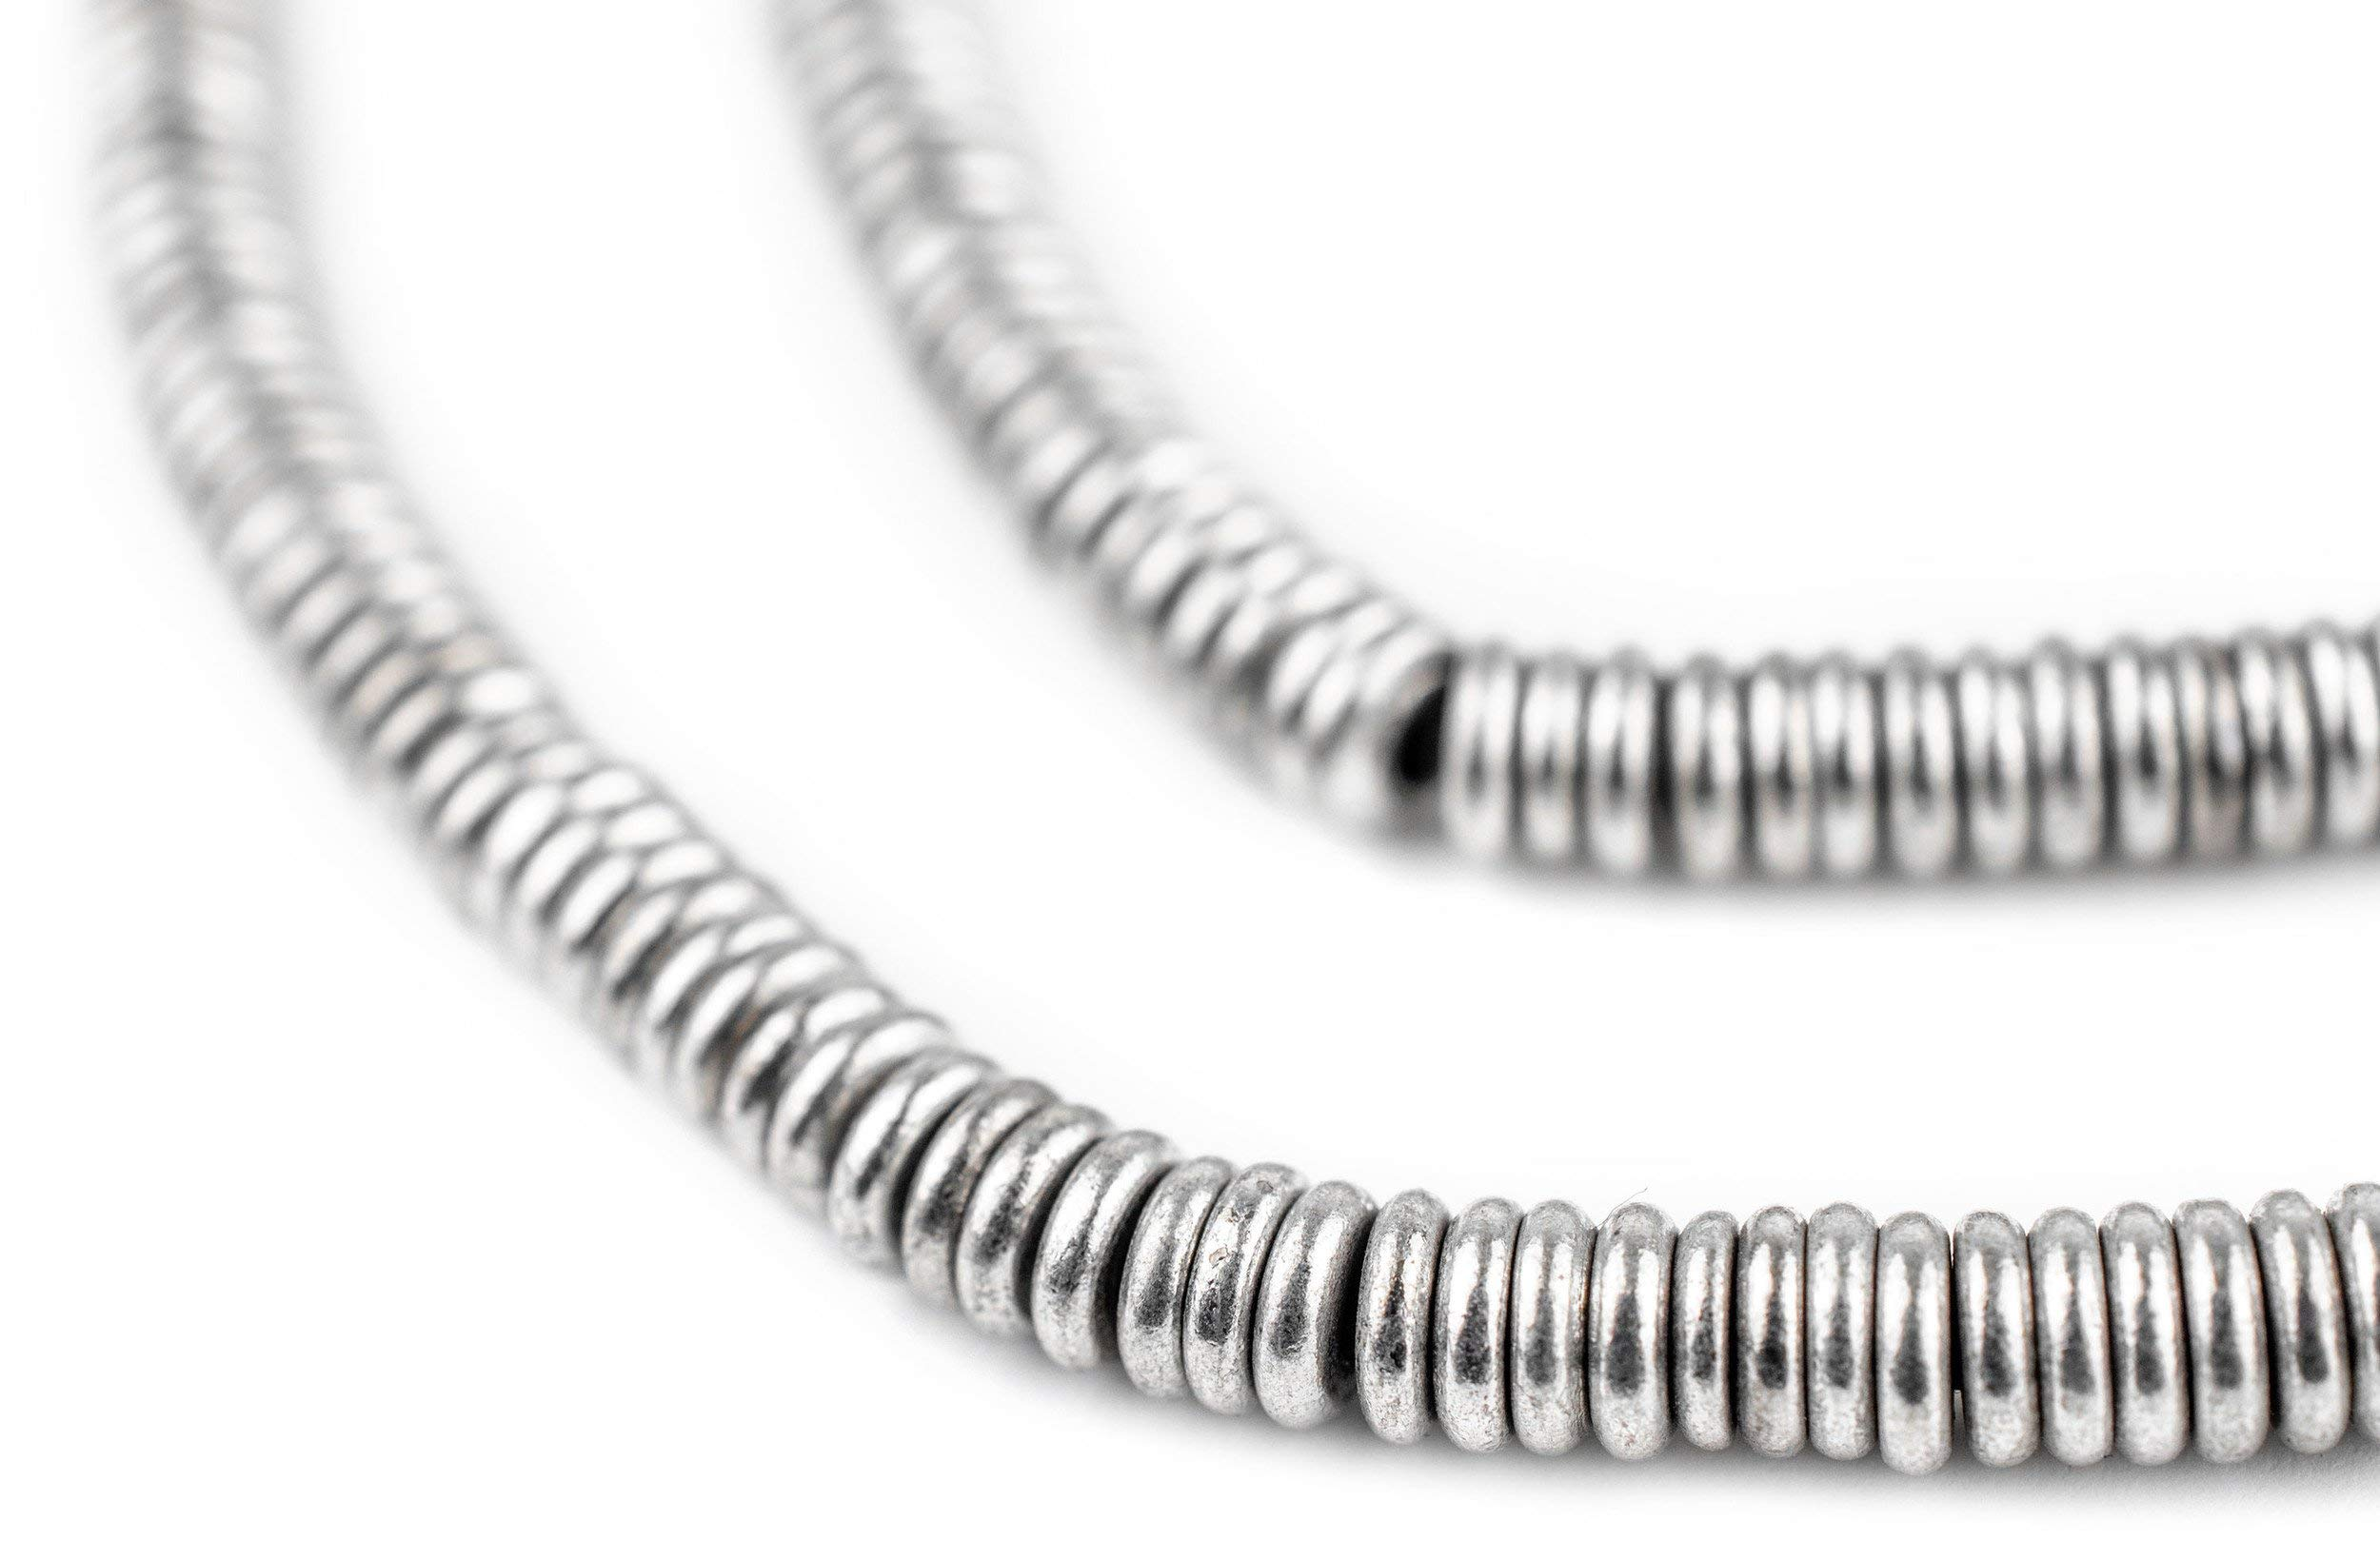 TheBeadChest Smooth Silver Heishi Beads 5mm White Metal Large Hole 16 Inch Strand